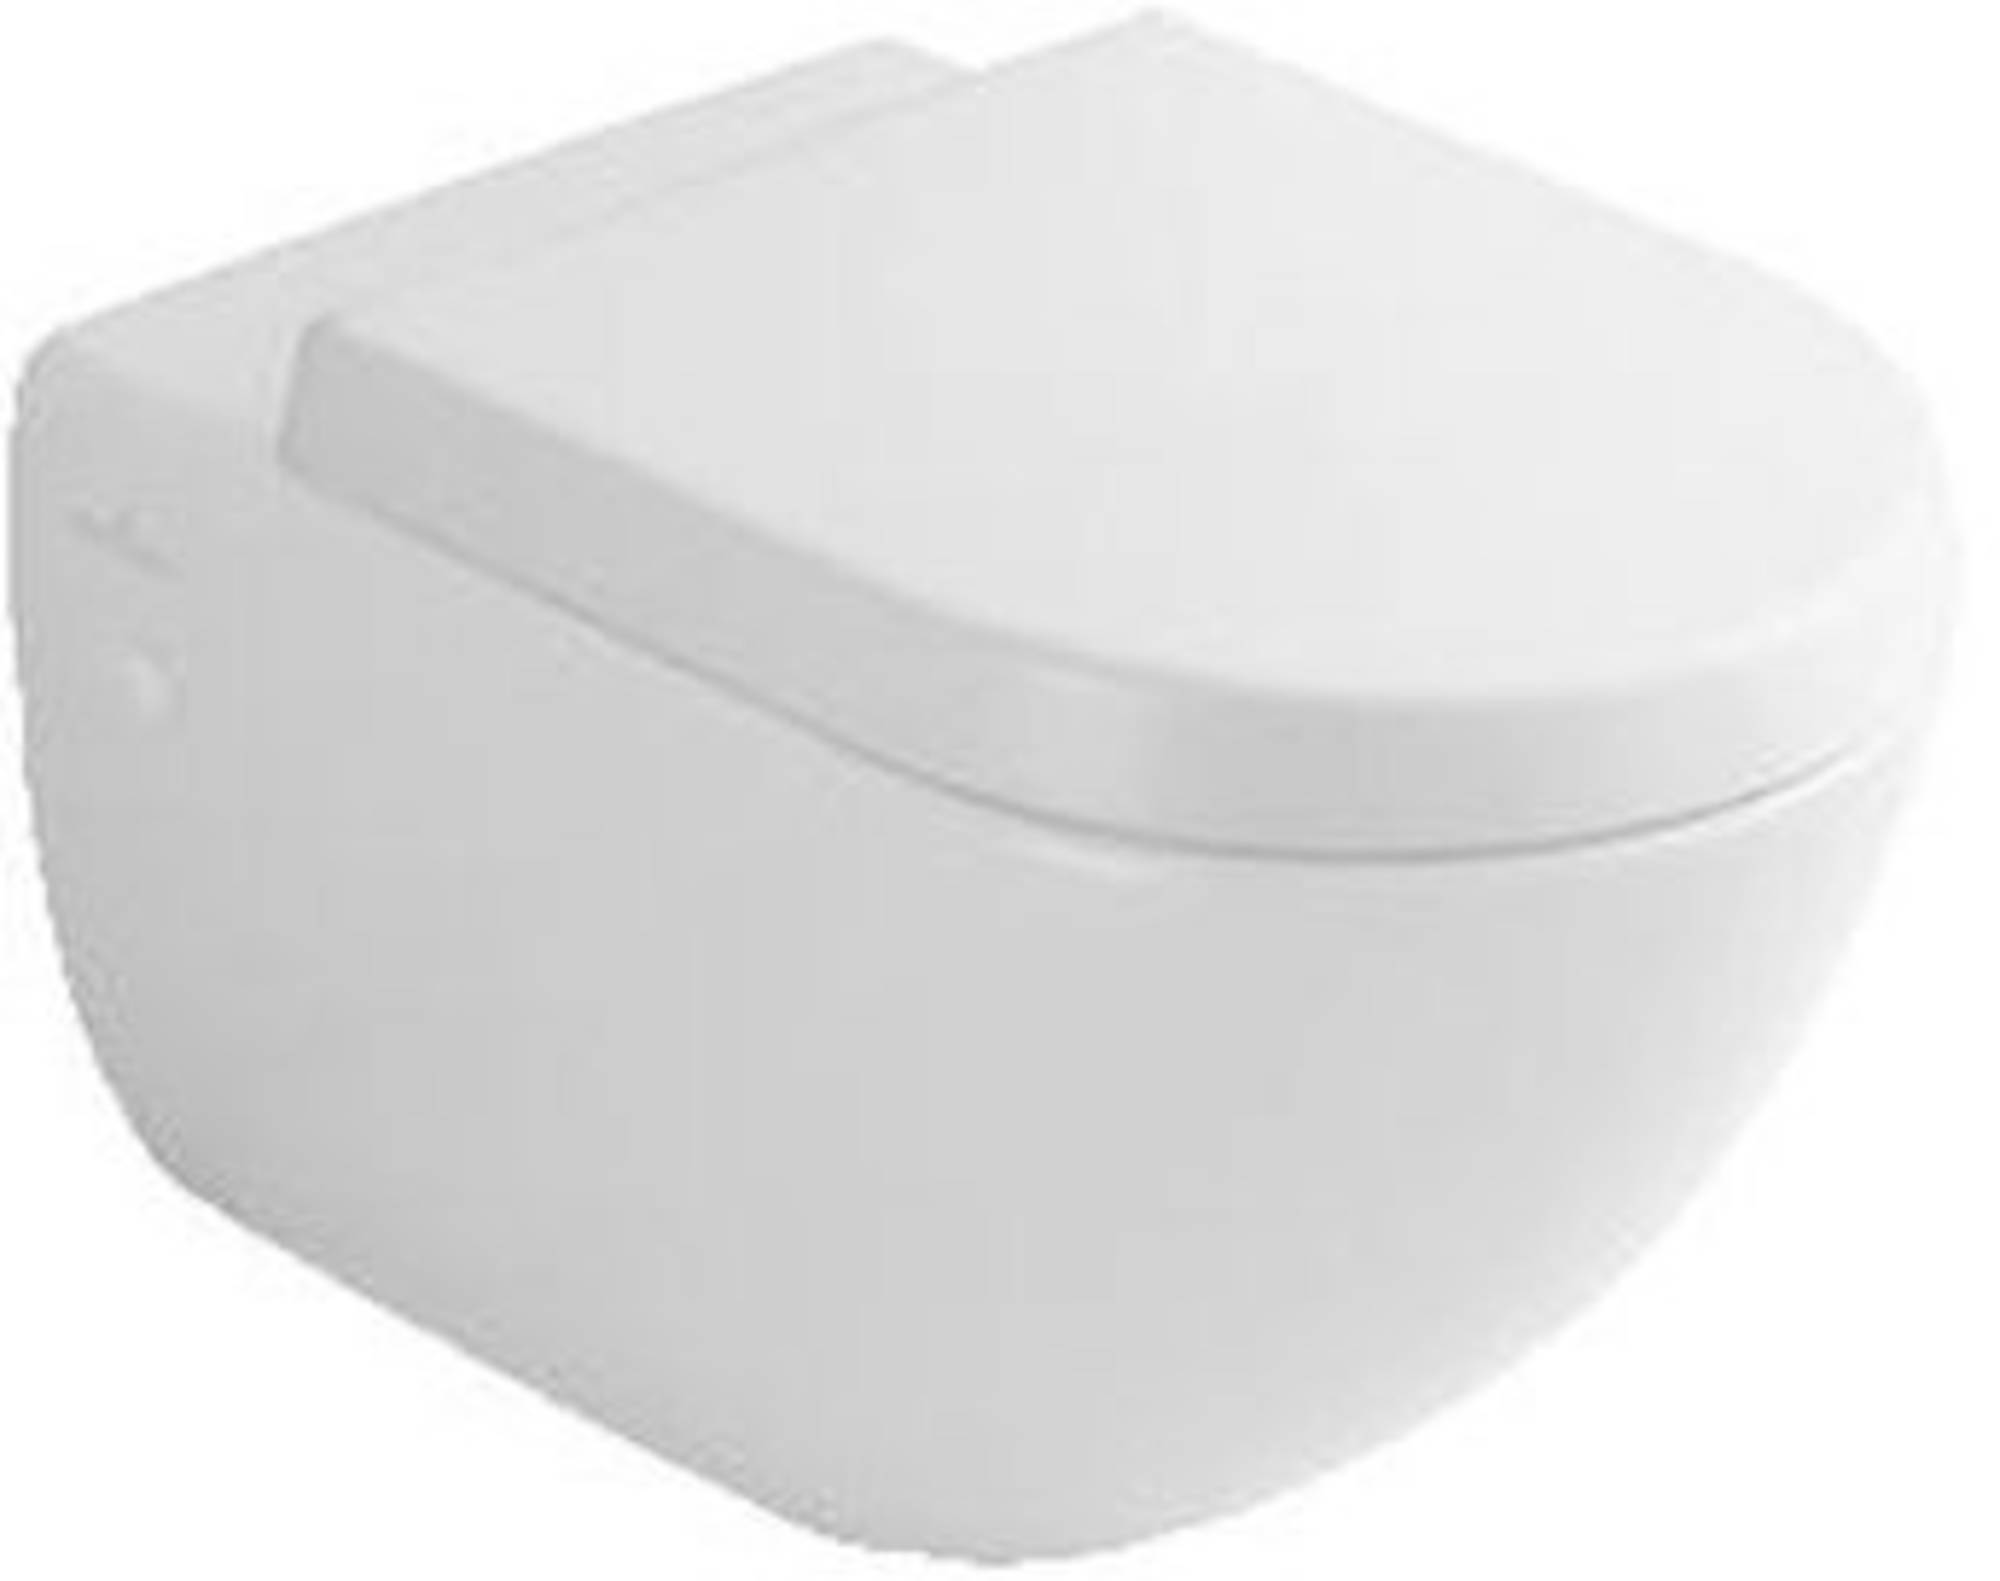 Villeroy & boch Subway 2.0 closetzitting quickrelease met rvs scharnieren, wit